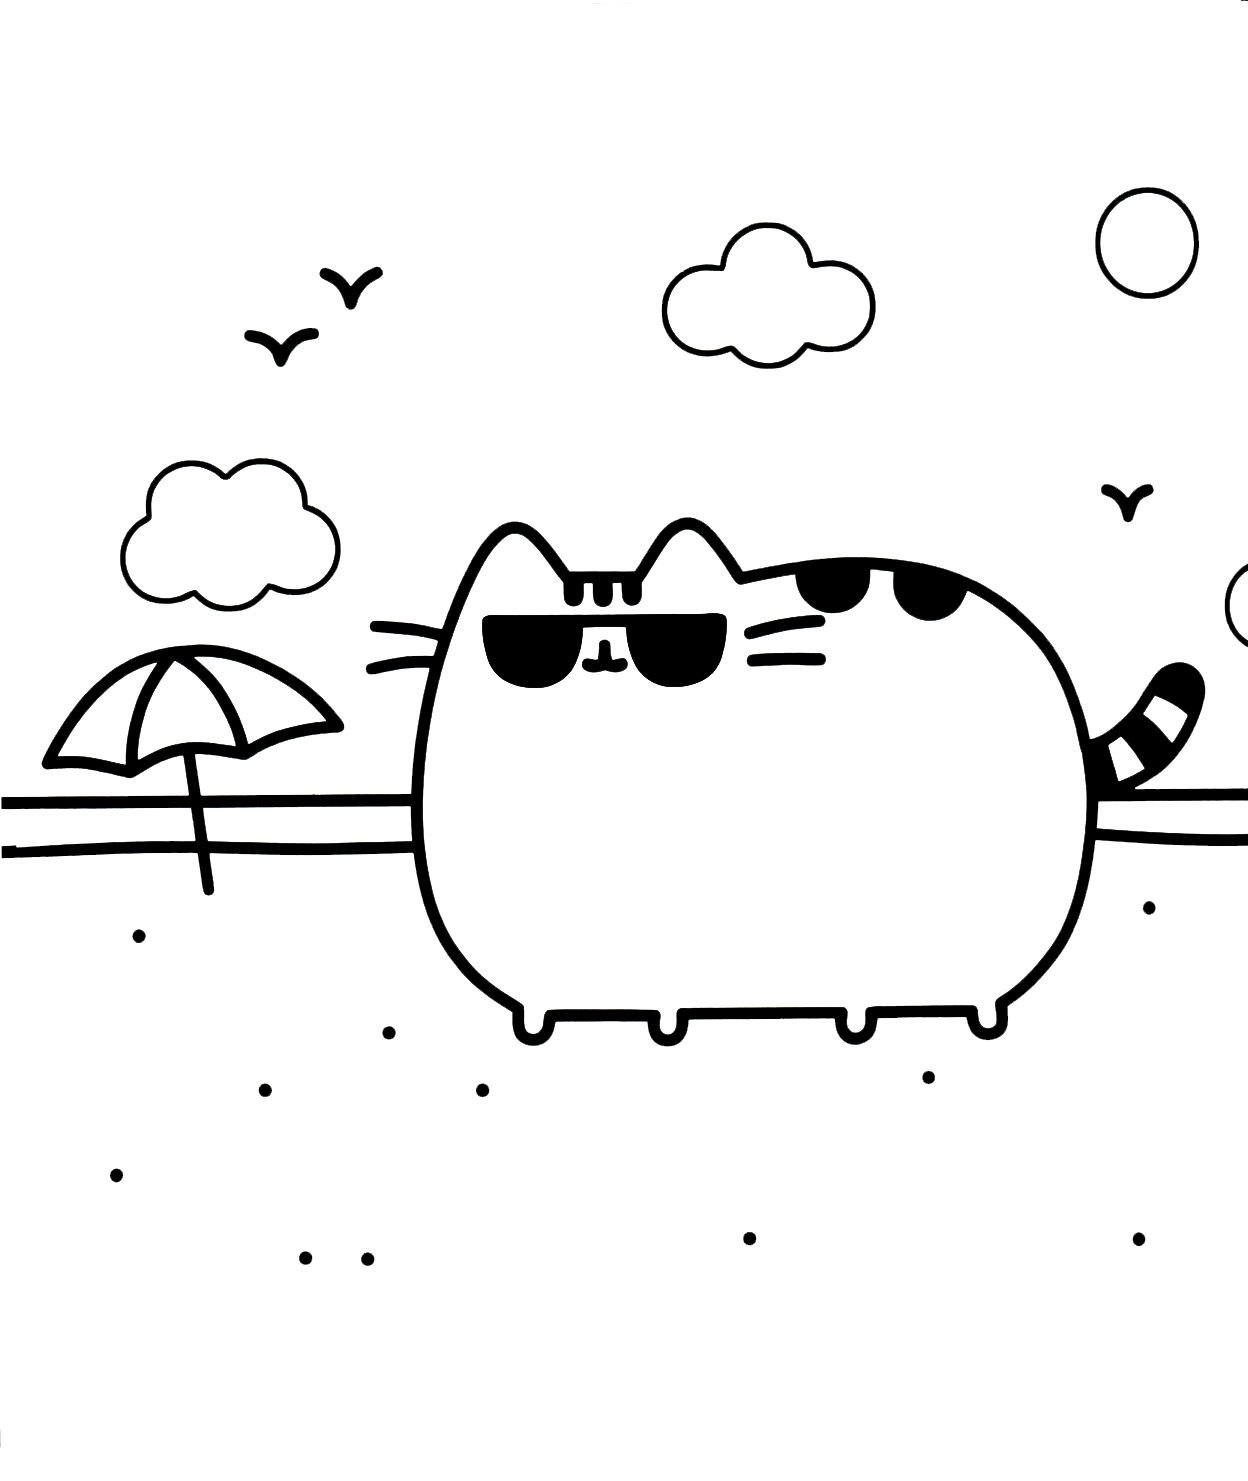 Kawaii Coloring Pages | Coloring Pages | Pinterest | Kawaii, Pusheen ...